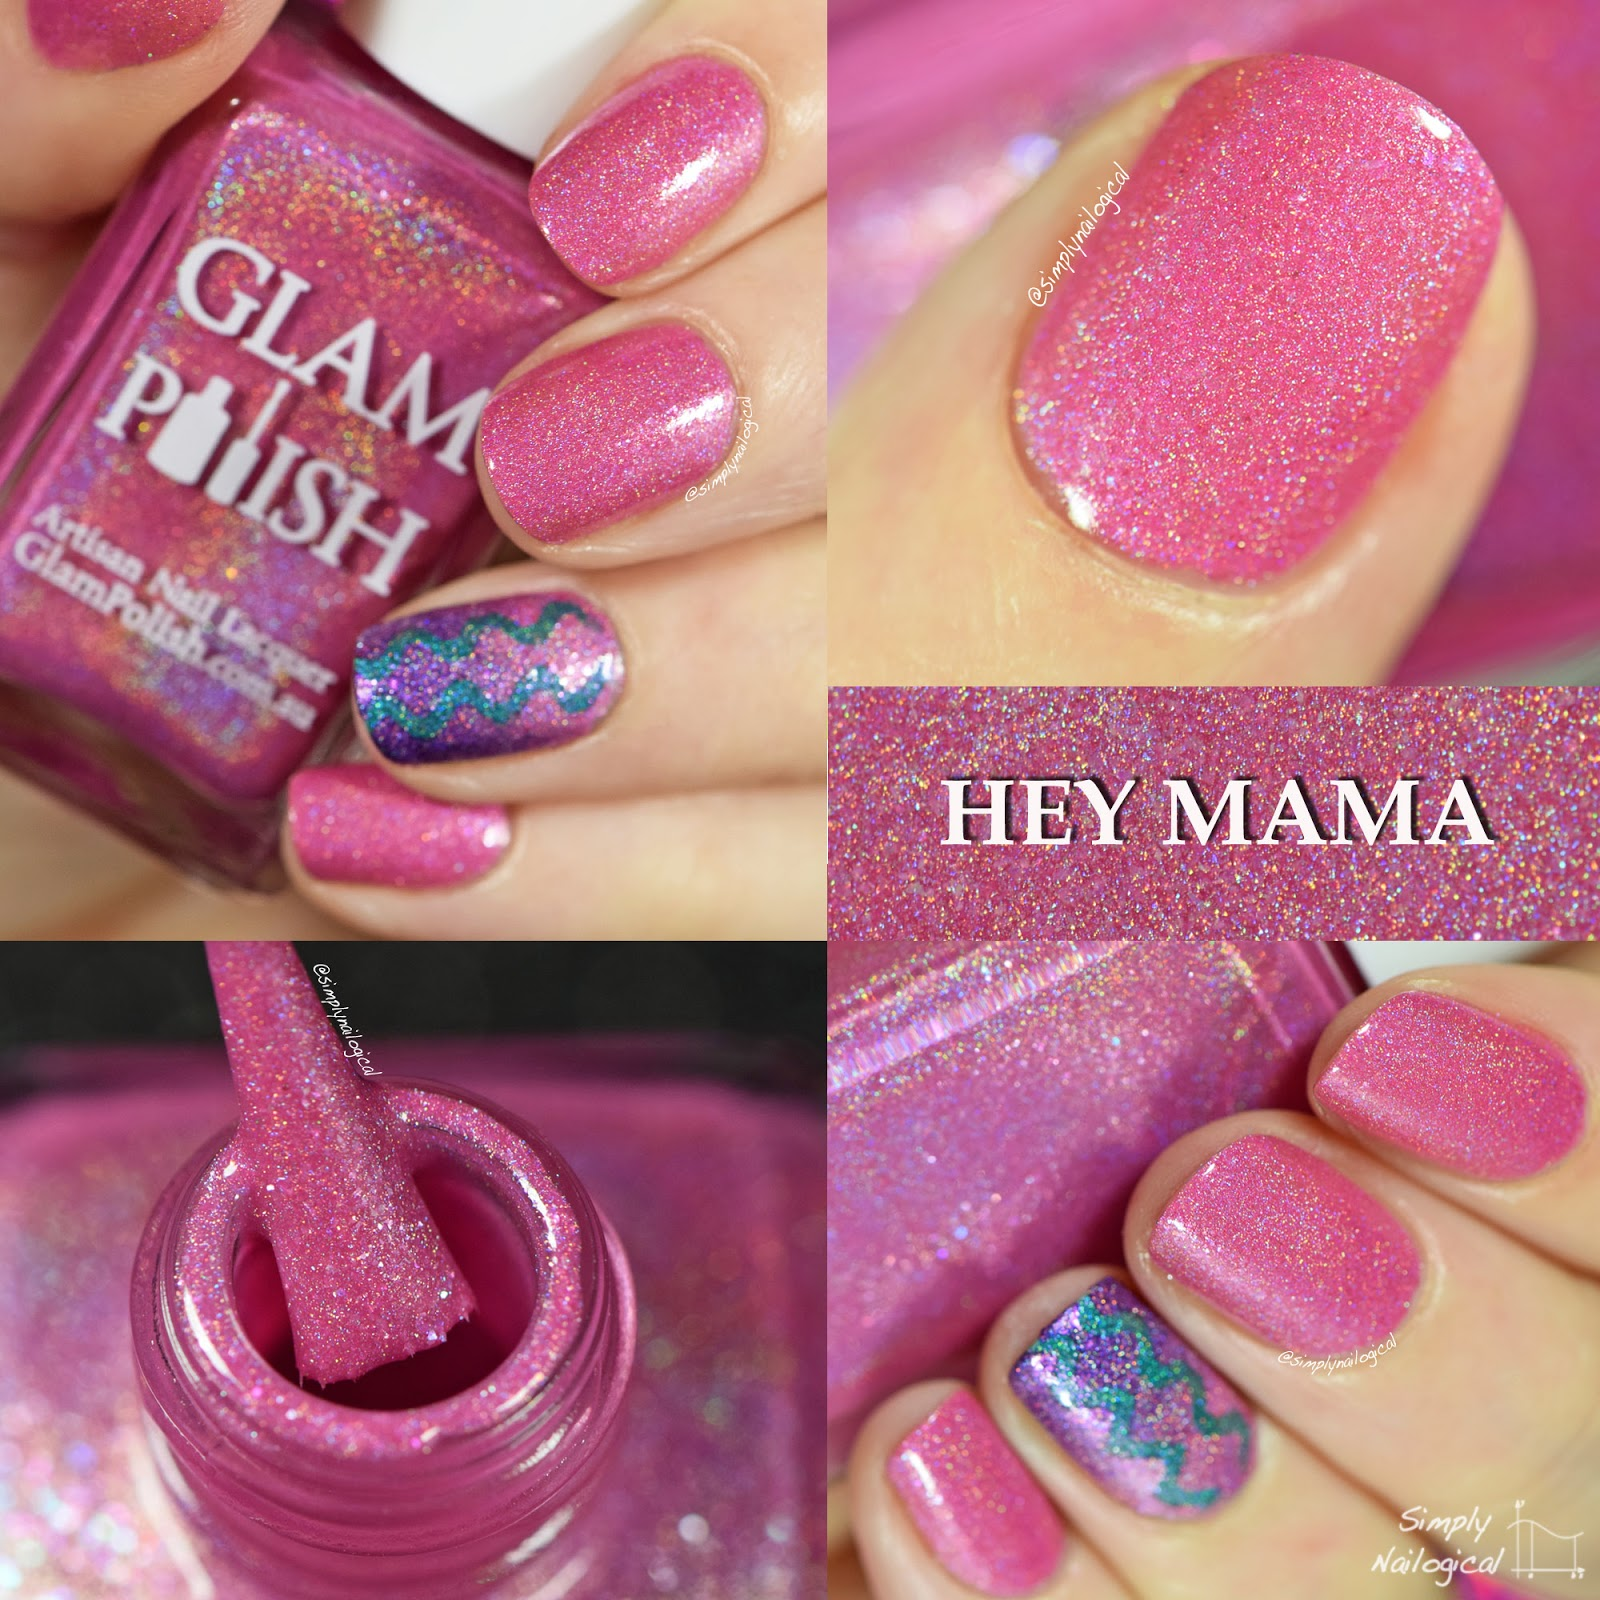 Glam Polish - Hey Mama